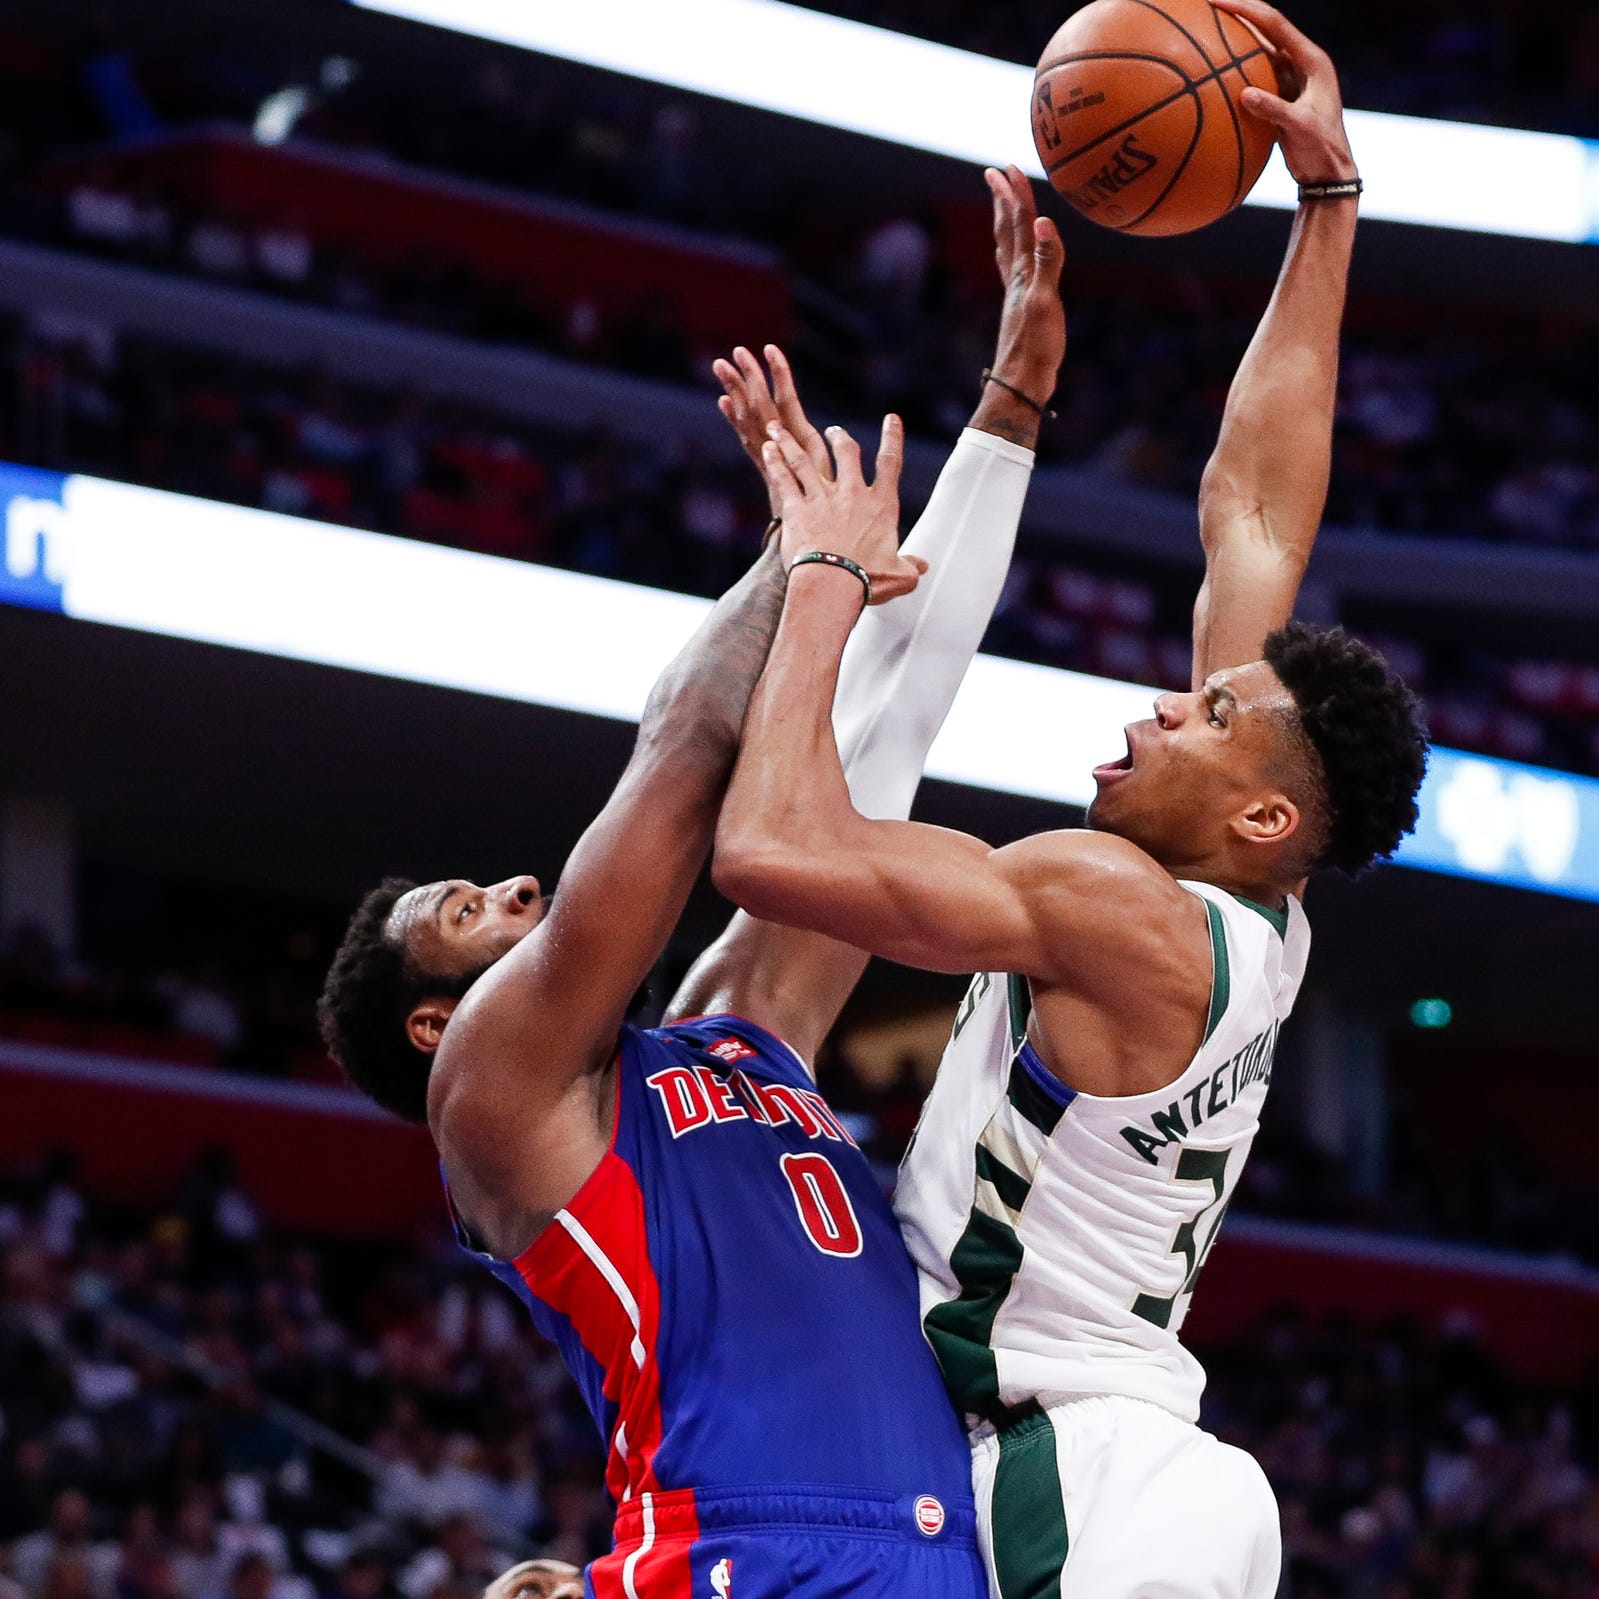 Pistons set NBA record for playoff losses, swept by Bucks, 127-104, in Game 4